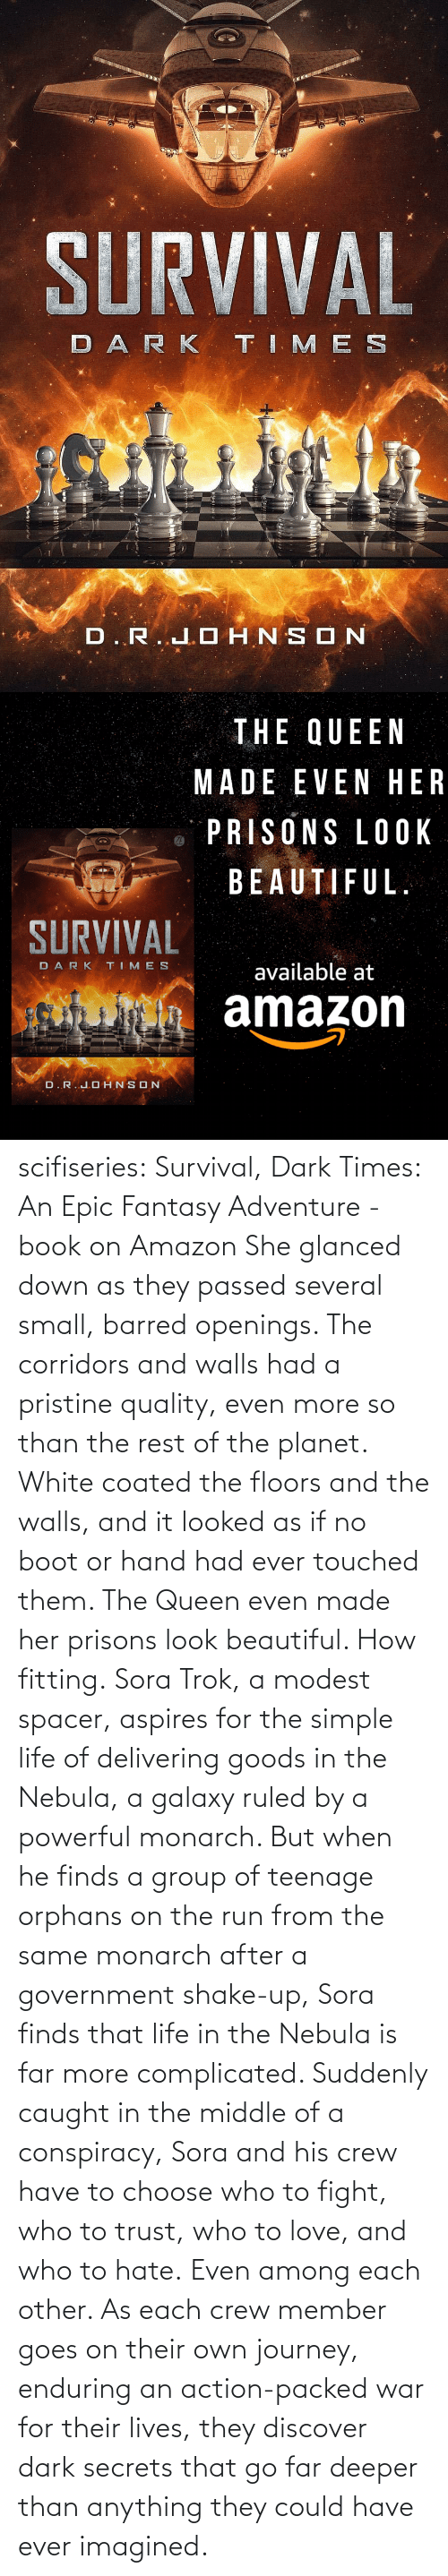 lives: scifiseries: Survival, Dark Times: An Epic Fantasy Adventure - book on Amazon  She glanced down as they  passed several small, barred openings. The corridors and walls had a  pristine quality, even more so than the rest of the planet. White coated  the floors and the walls, and it looked as if no boot or hand had ever  touched them.  The Queen even made her prisons look beautiful.  How fitting. Sora  Trok, a modest spacer, aspires for the simple life of delivering goods  in the Nebula, a galaxy ruled by a powerful monarch. But when he finds a  group of teenage orphans on the run from the same monarch after a  government shake-up, Sora finds that life in the Nebula is far more complicated.  Suddenly  caught in the middle of a conspiracy, Sora and his crew have to choose  who to fight, who to trust, who to love, and who to hate. Even among each other.  As  each crew member goes on their own journey, enduring an action-packed  war for their lives, they discover dark secrets that go far deeper than  anything they could have ever imagined.